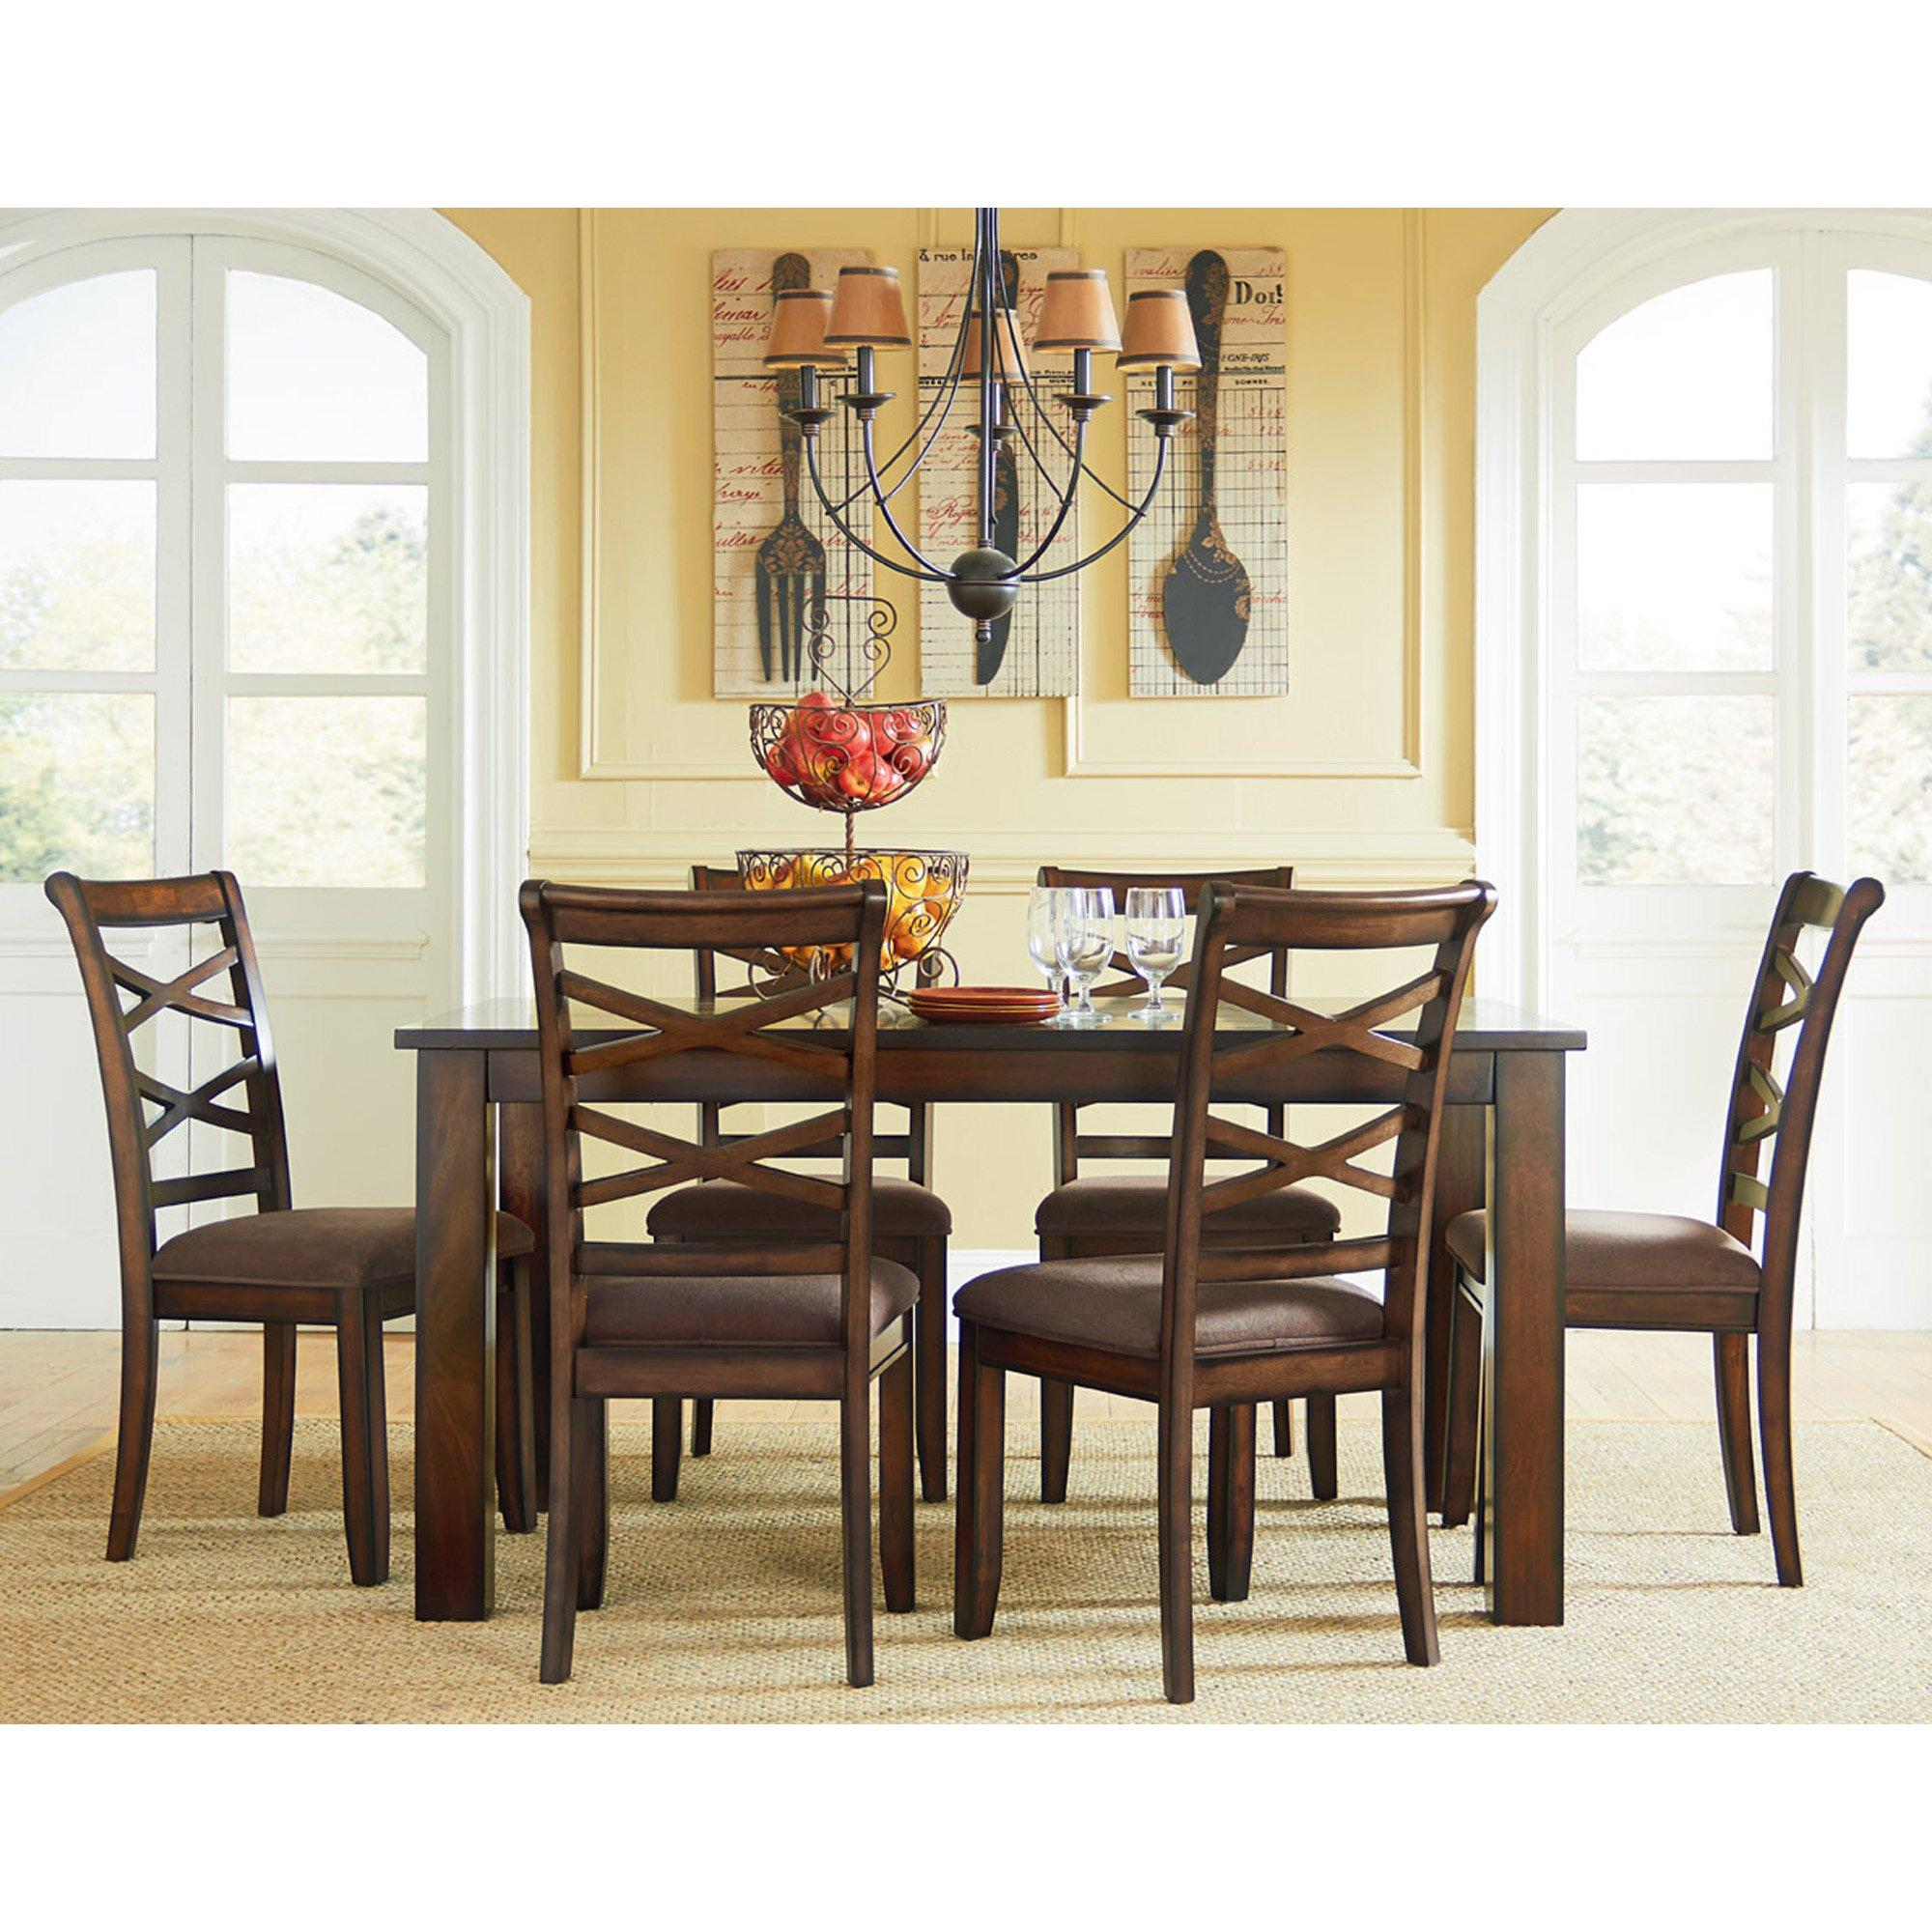 7 Piece Redondo Dining Room Collection, Aarons Dining Room Sets